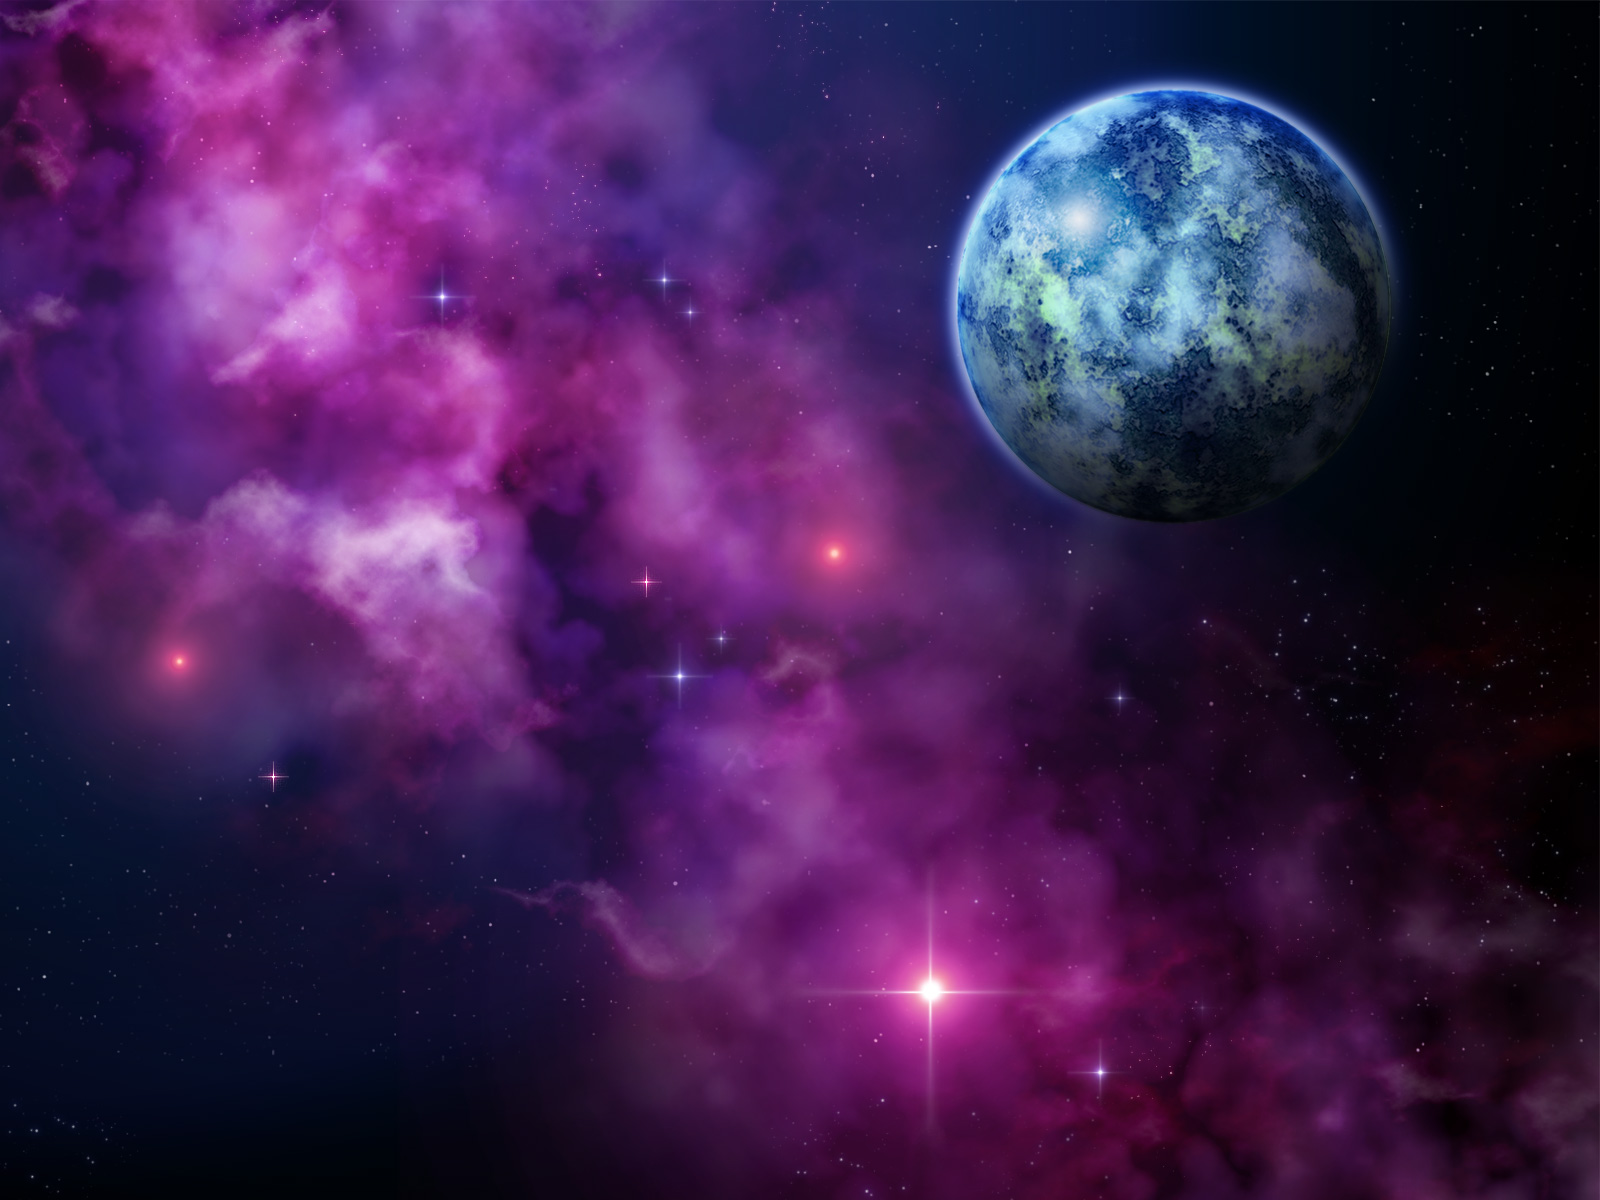 Planet Nebula Wallpaper by Anikoo on DeviantArt Real Planetary Nebula Wallpaper